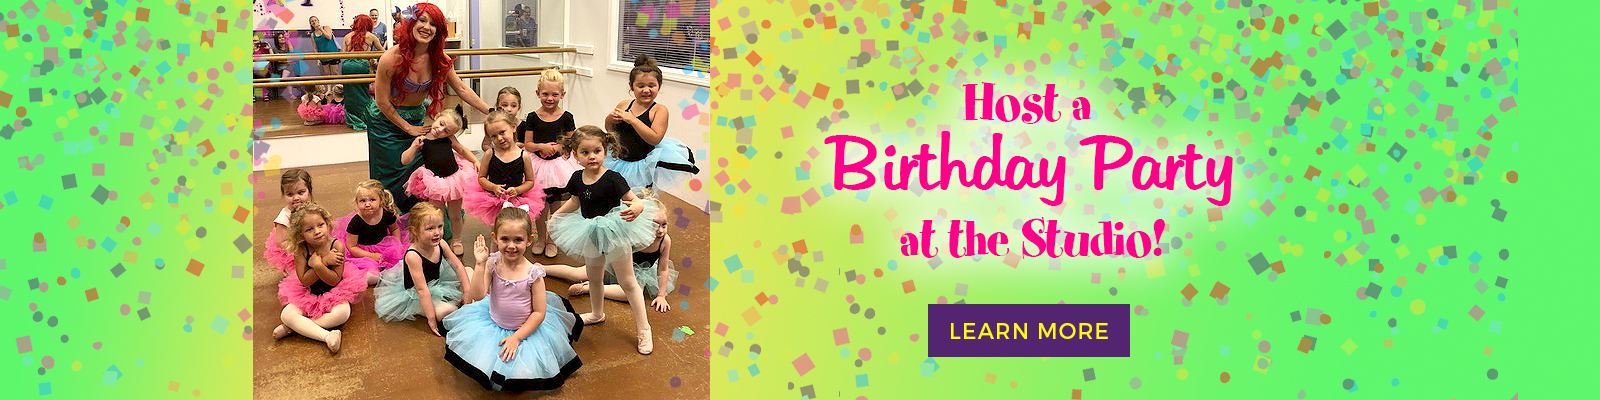 Host a Birthday Party at DWS